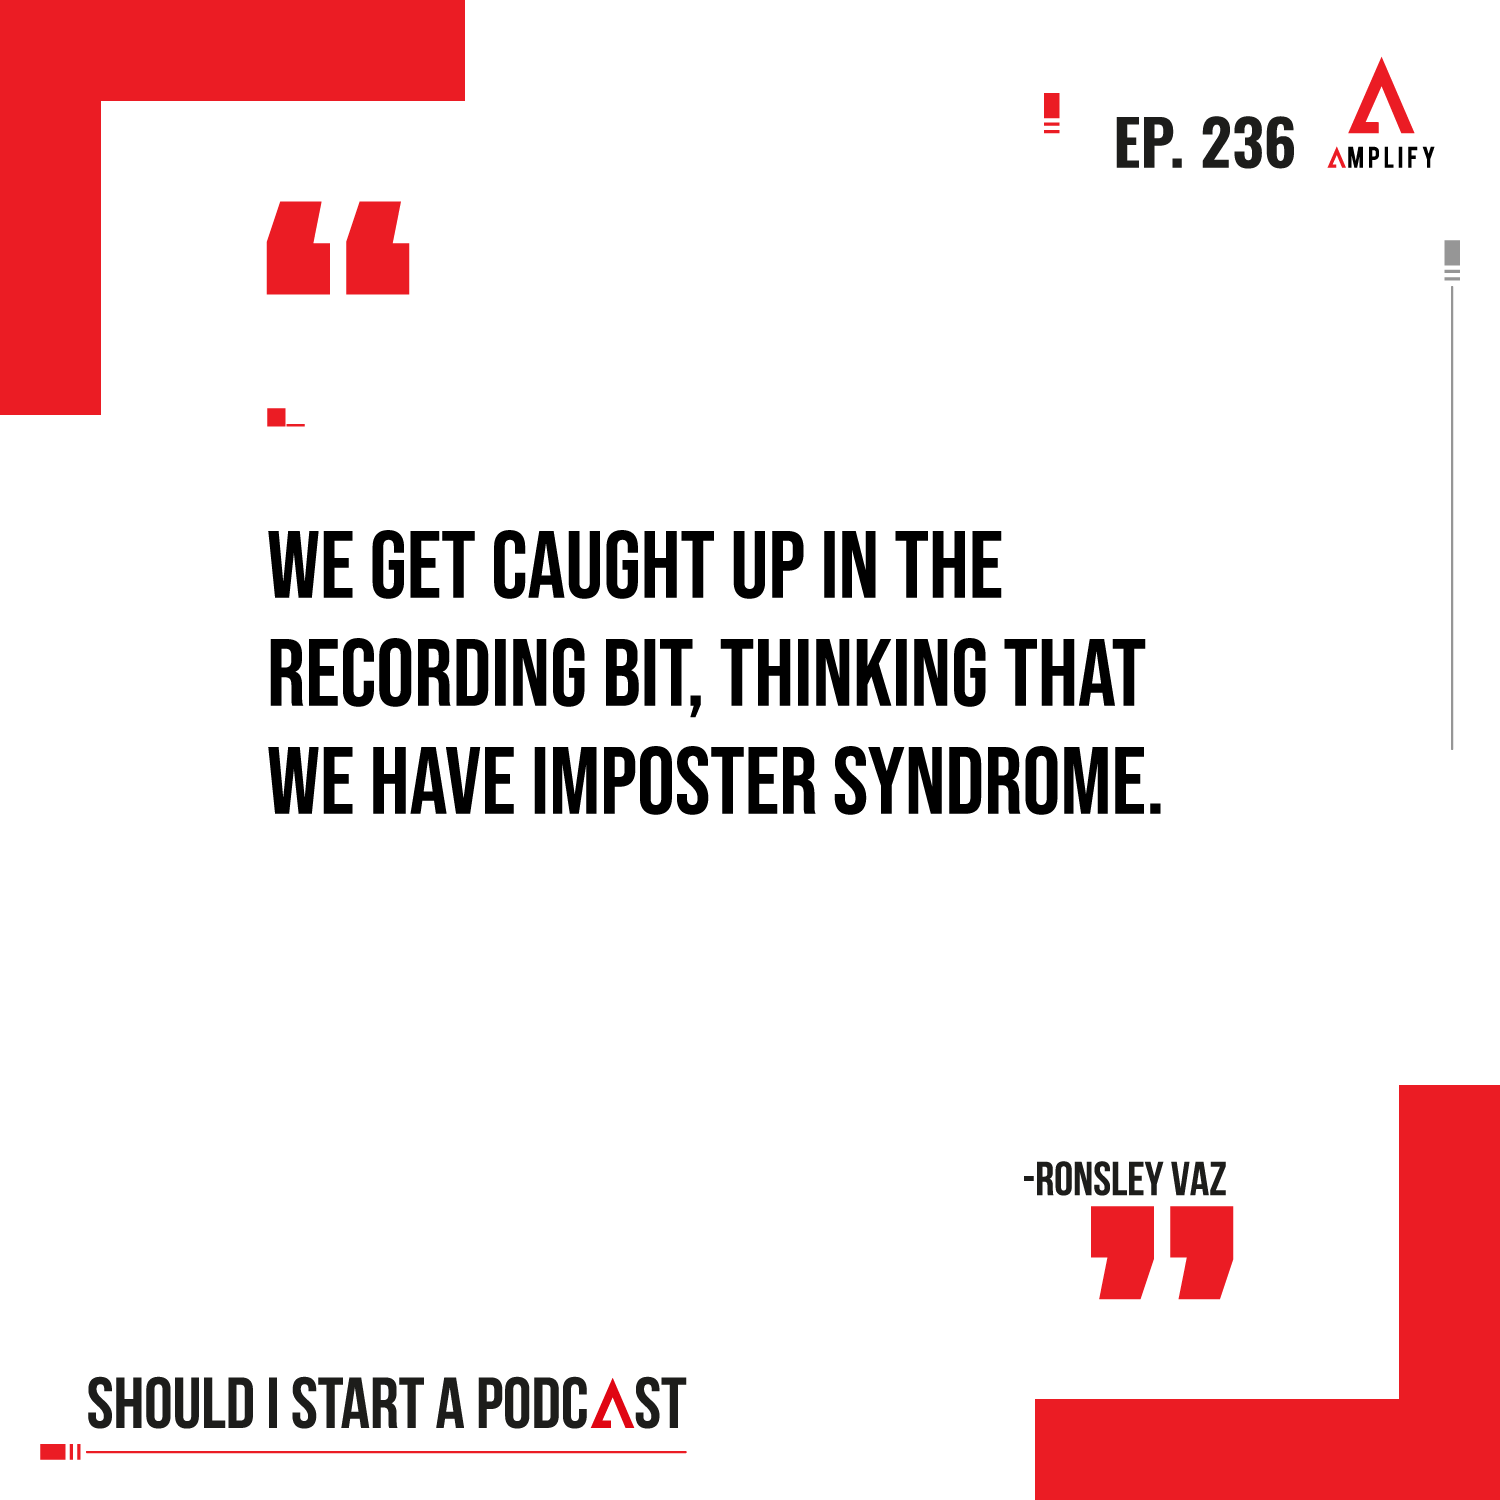 Quote: We get caught up in the recording bit, thinking that we have imposter syndrome.